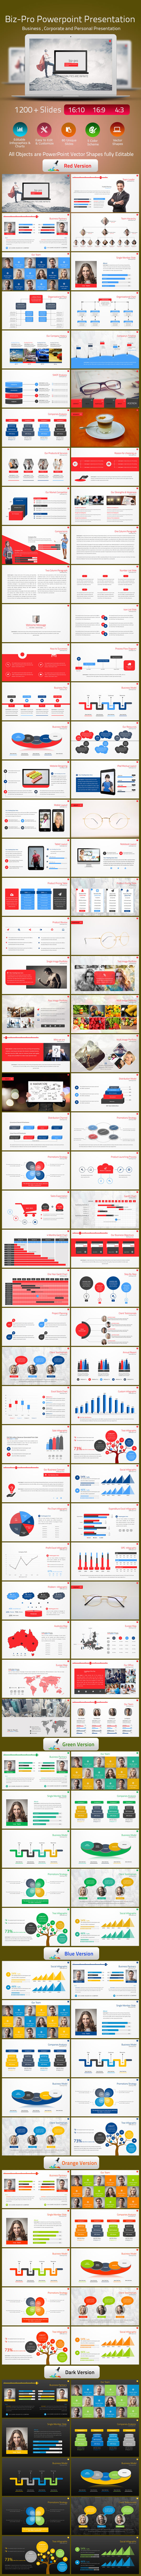 GraphicRiver Biz-Pro Power Point Presentation 10058602